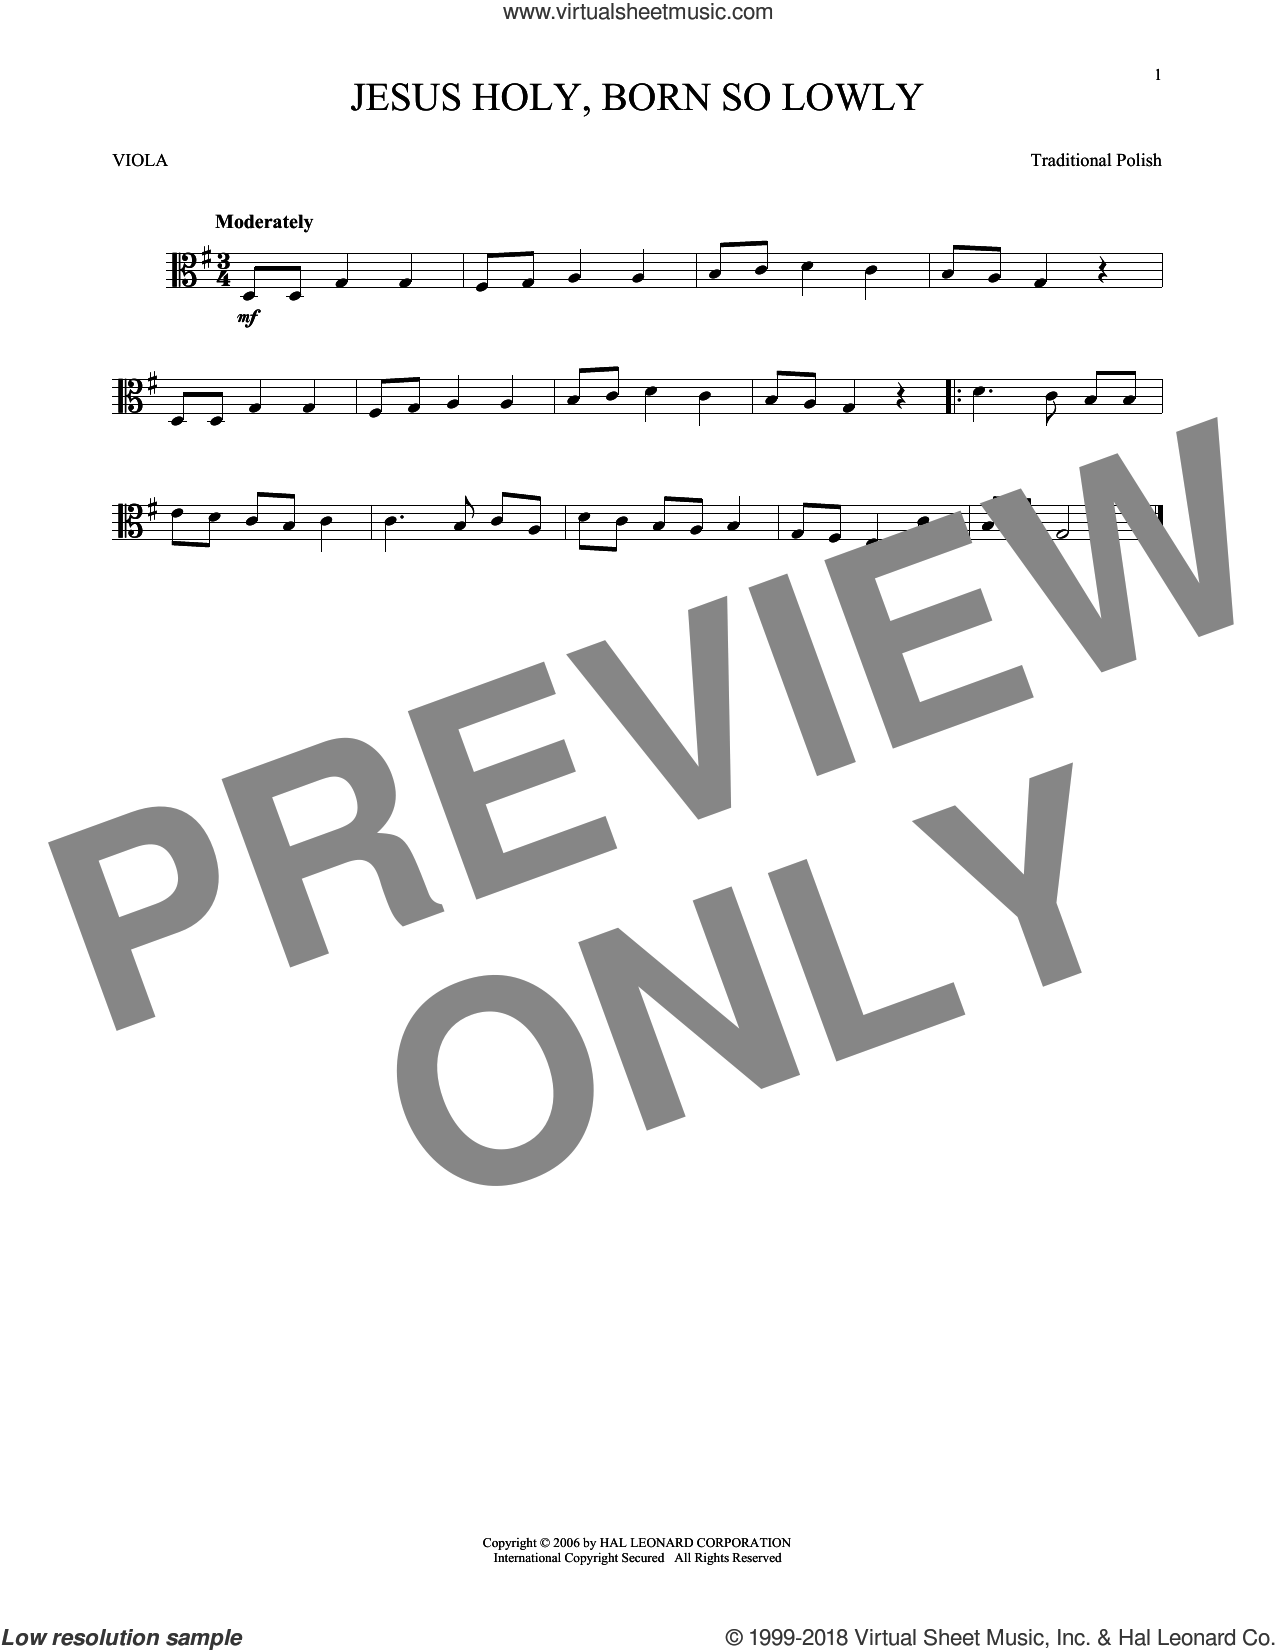 Jesus Holy, Born So Lowly sheet music for viola solo, intermediate skill level